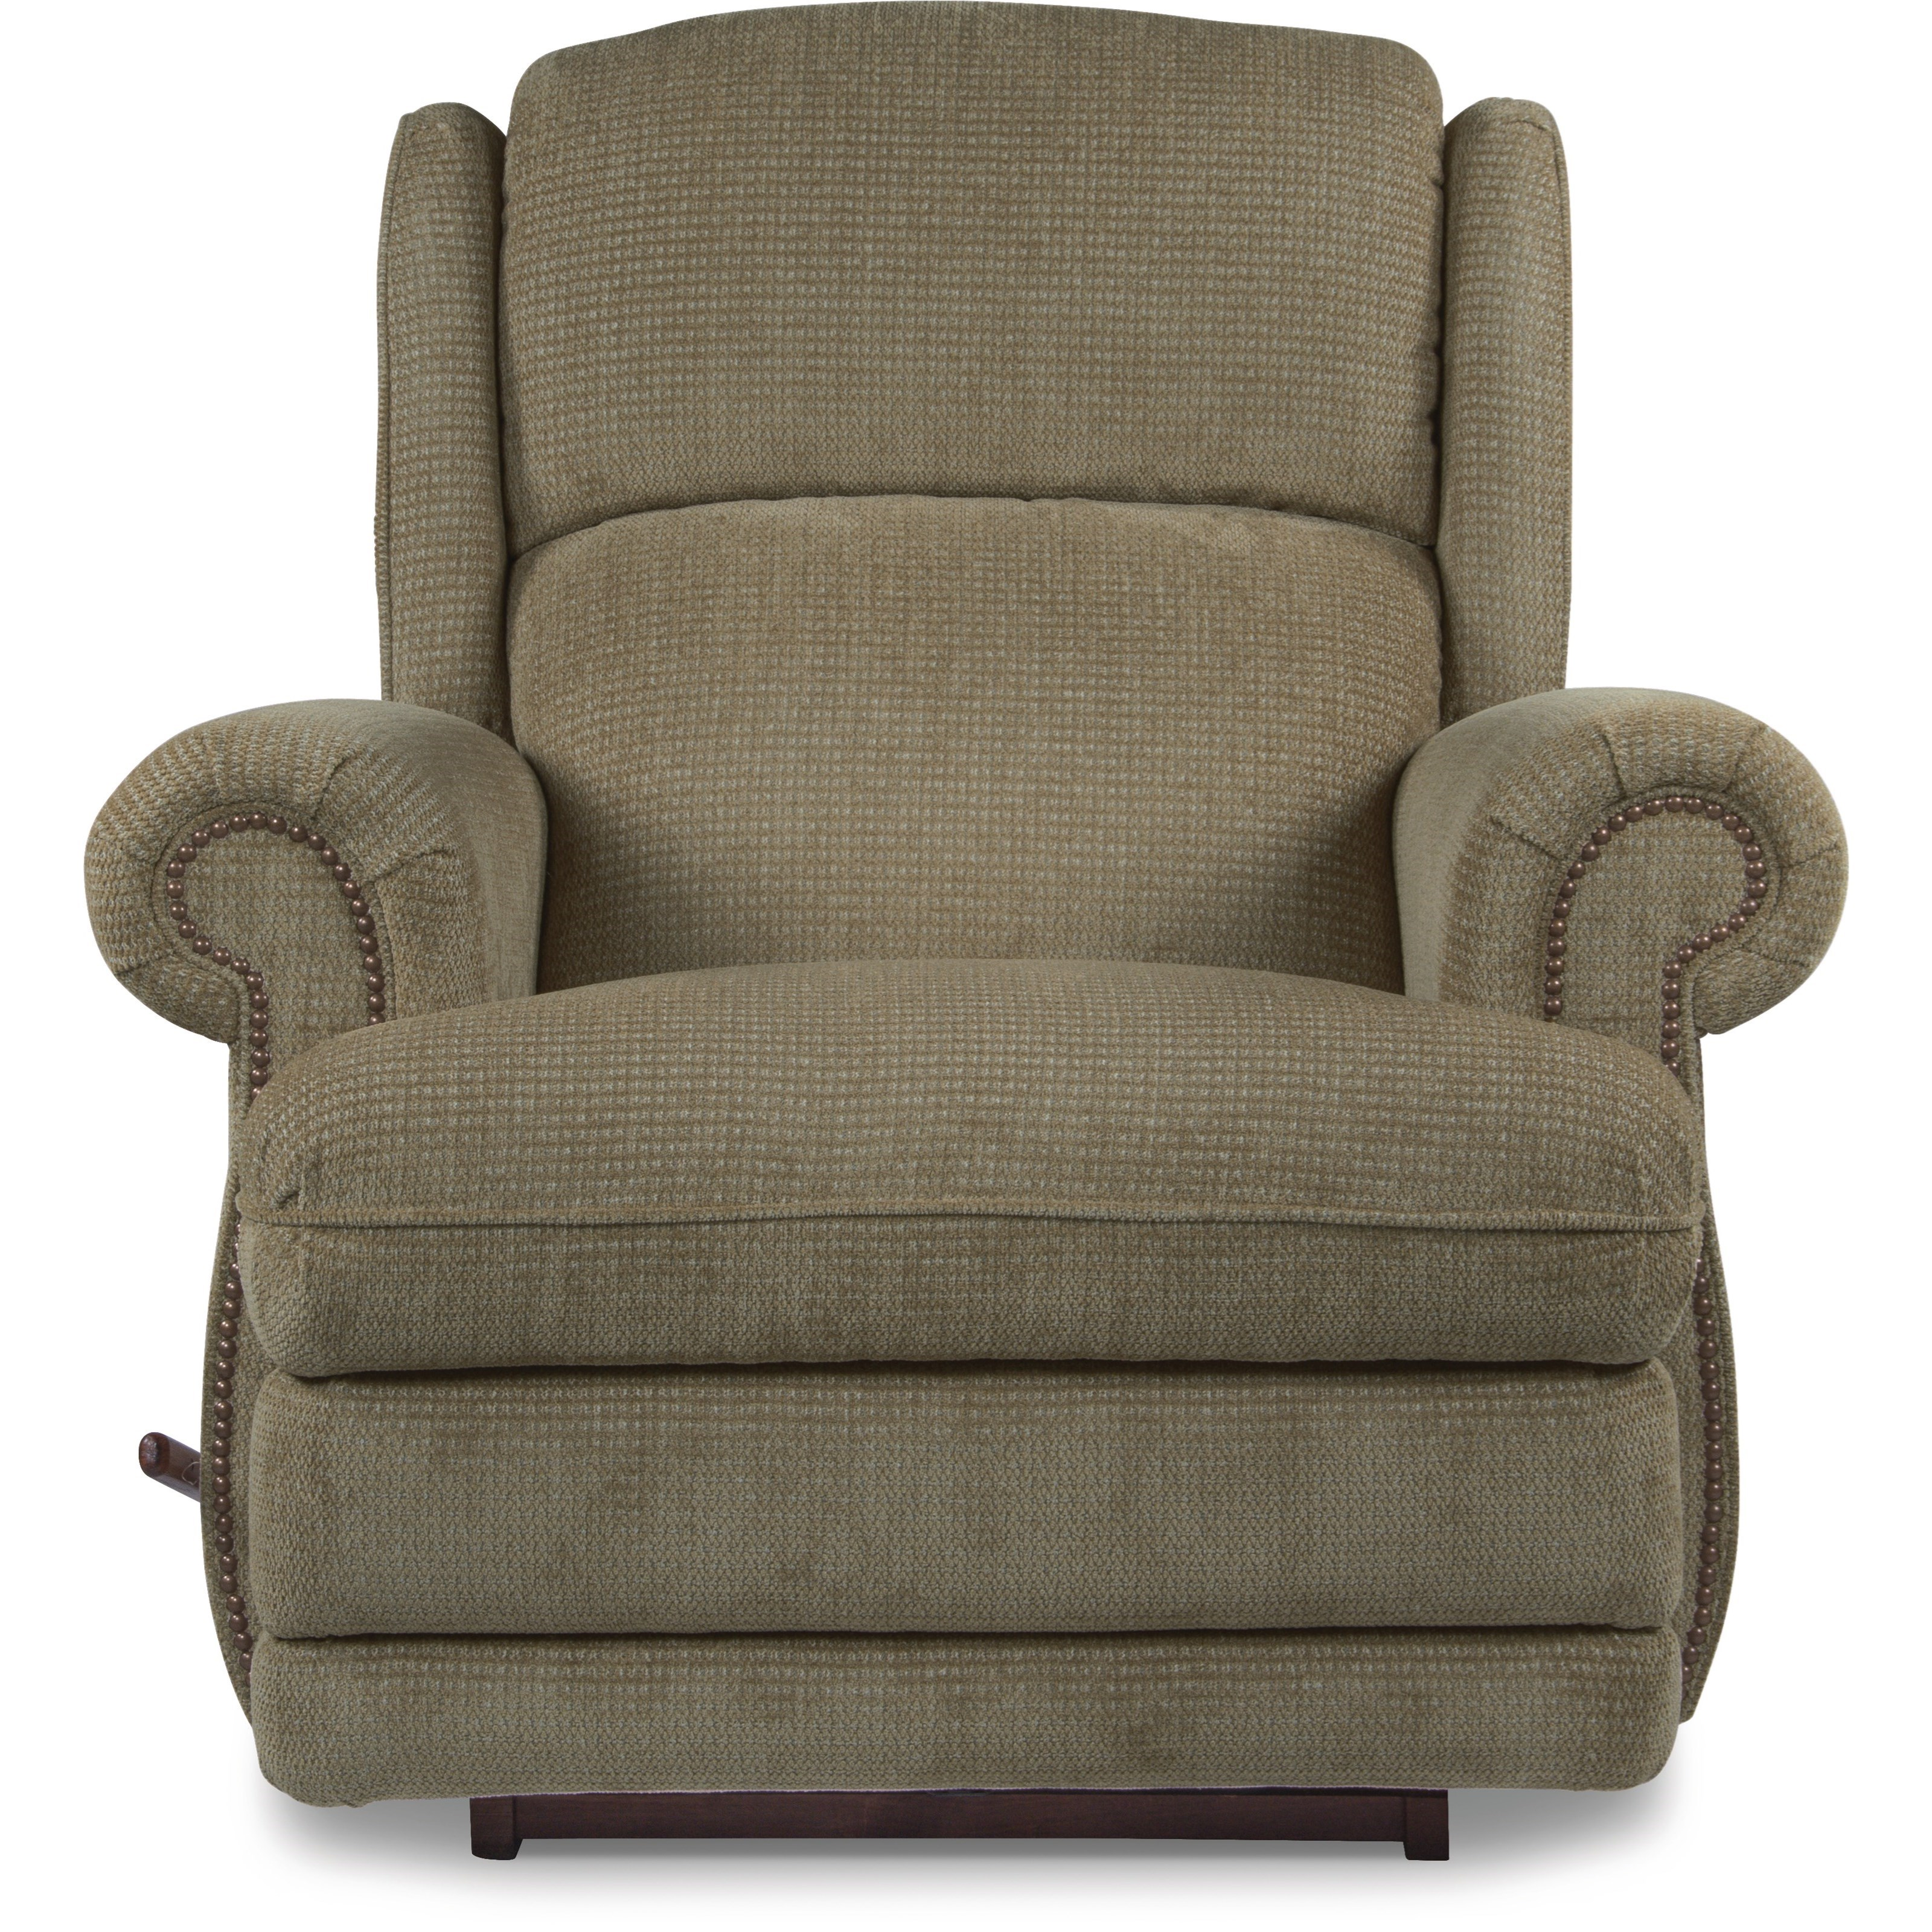 Kirkwood Rocking Recliner by La-Z-Boy at Home Furnishings Direct